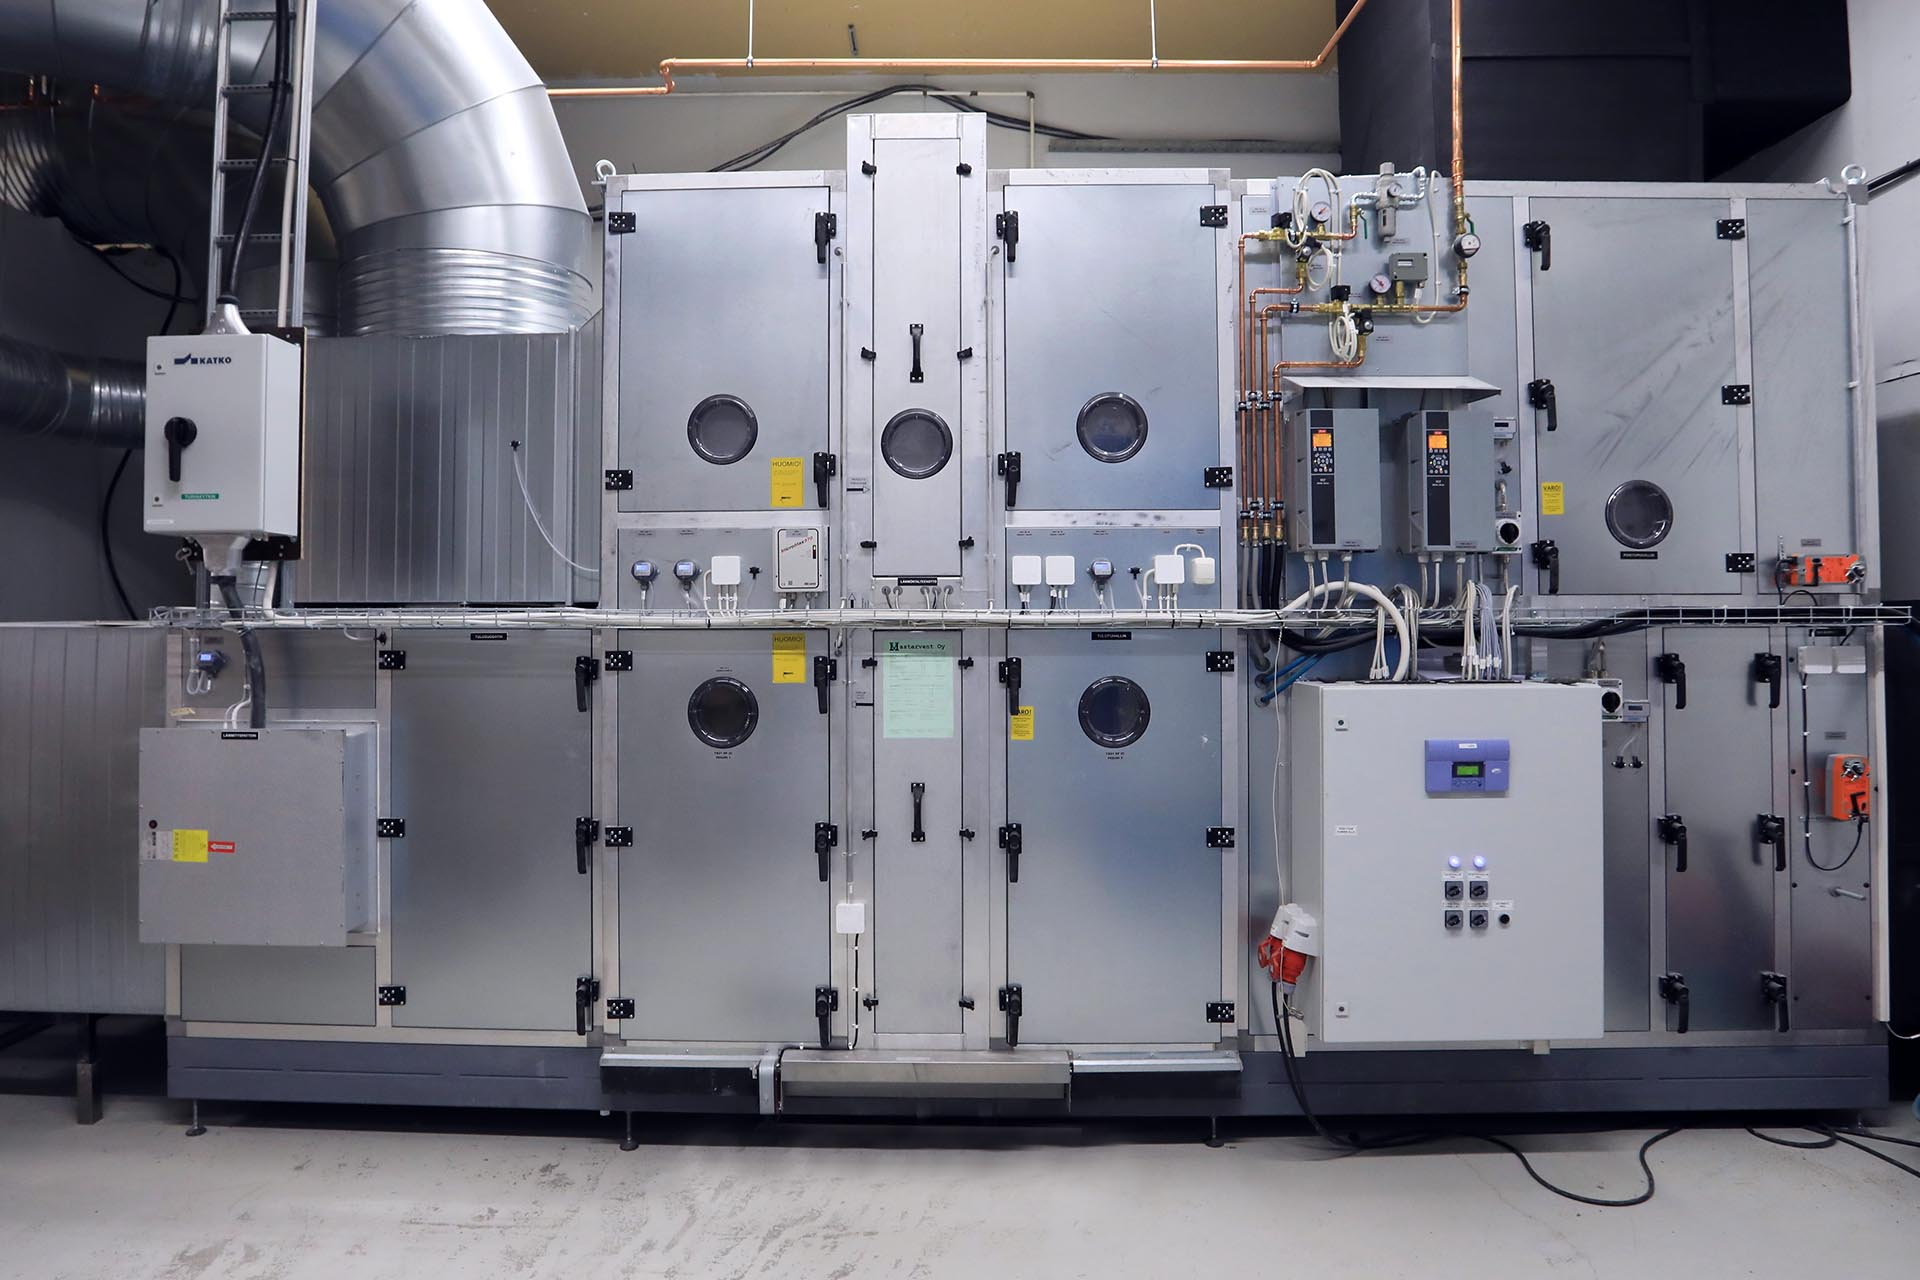 We Modernized the Air Conditioning at our Ii Factory – Waste Heat from Production Machinery Now Used for Heating